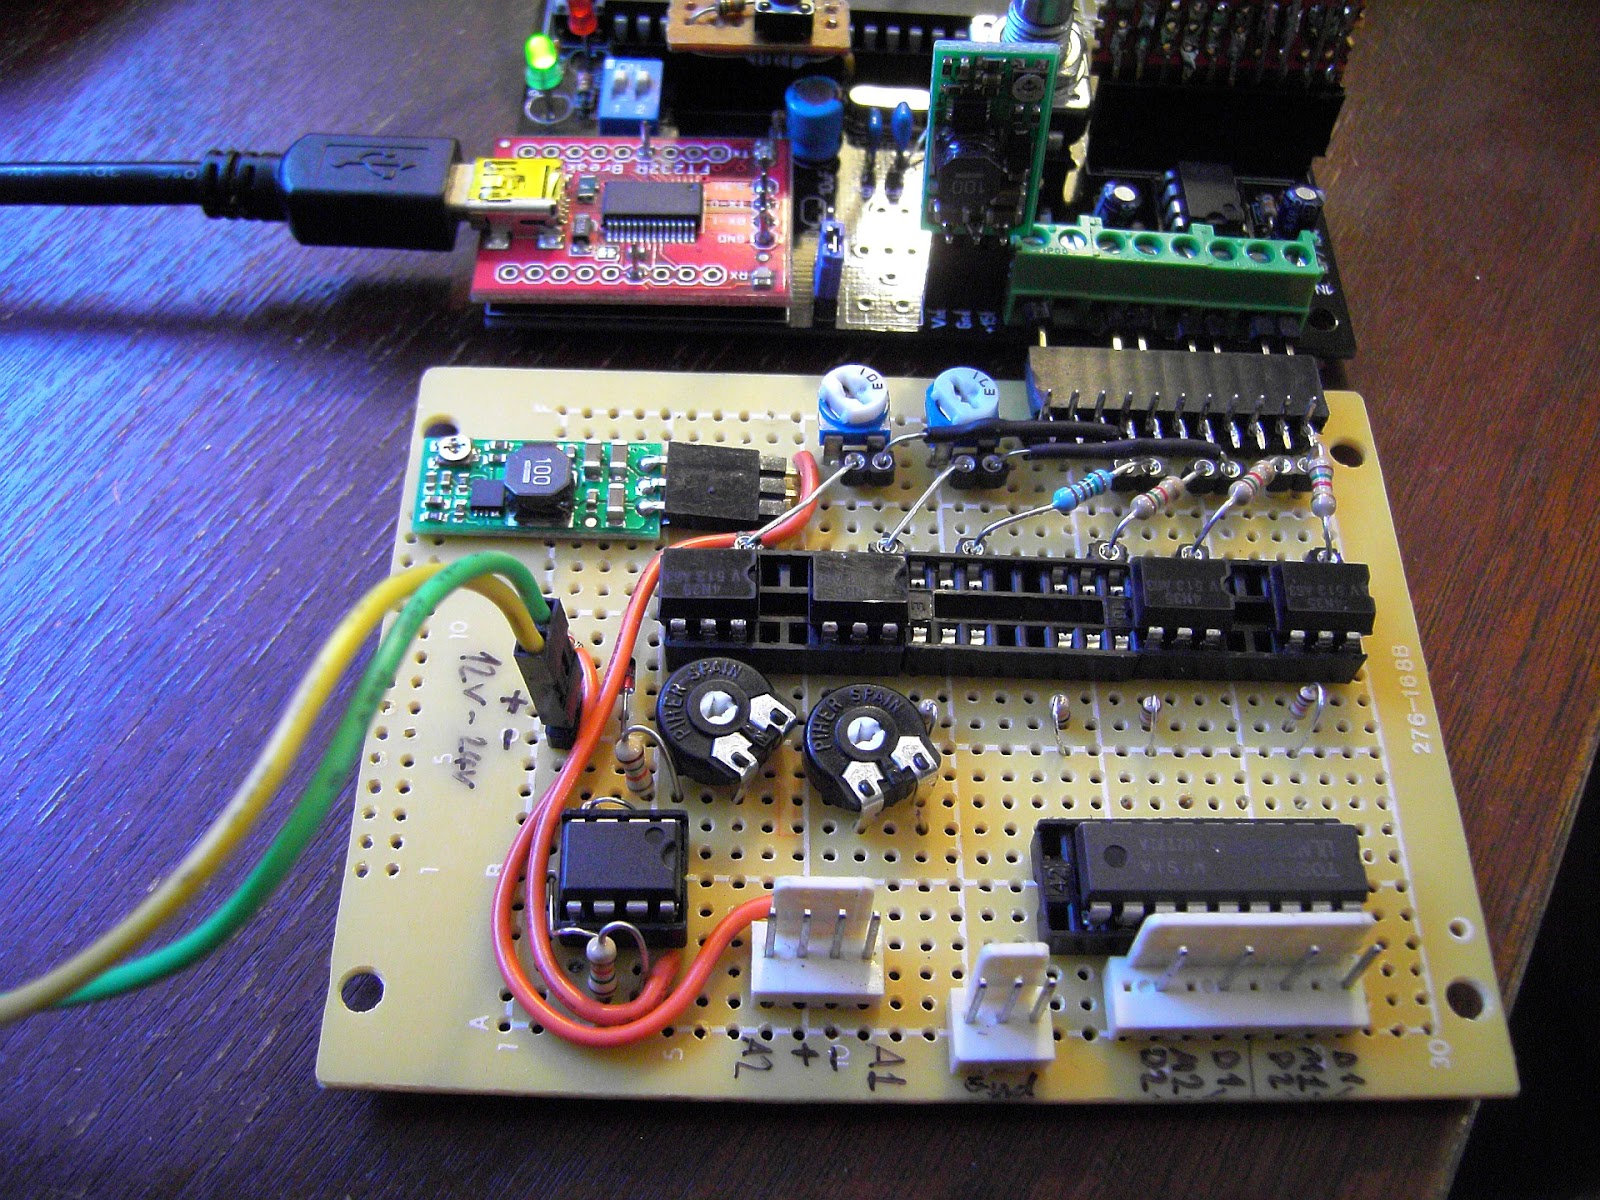 Boards May Be Interested In A New Circuit Board Prototyping Machine